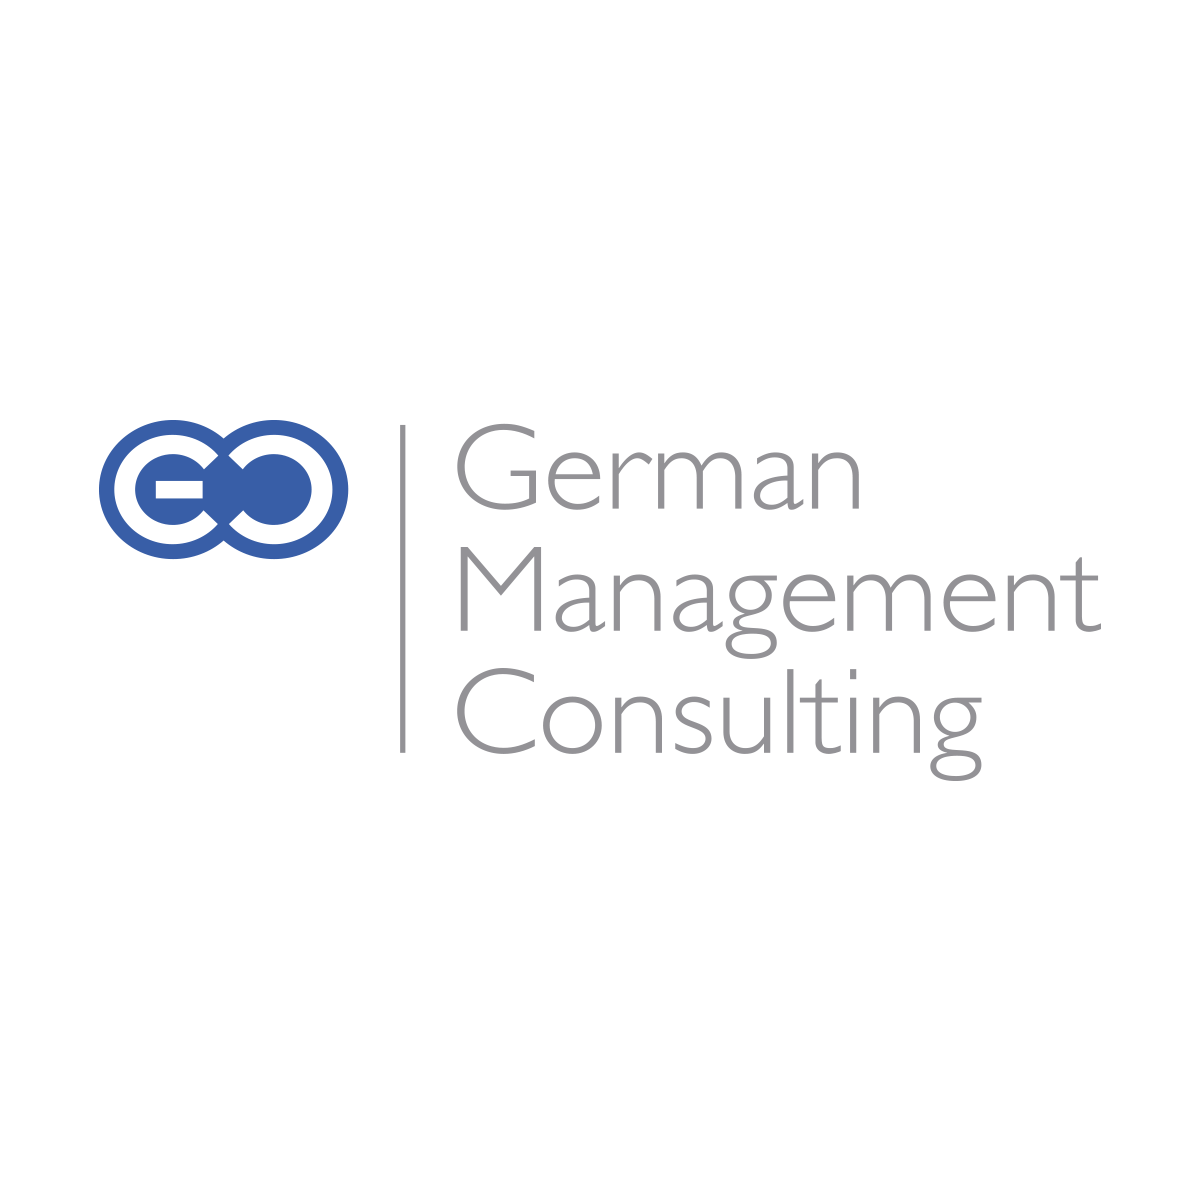 German Management Consulting